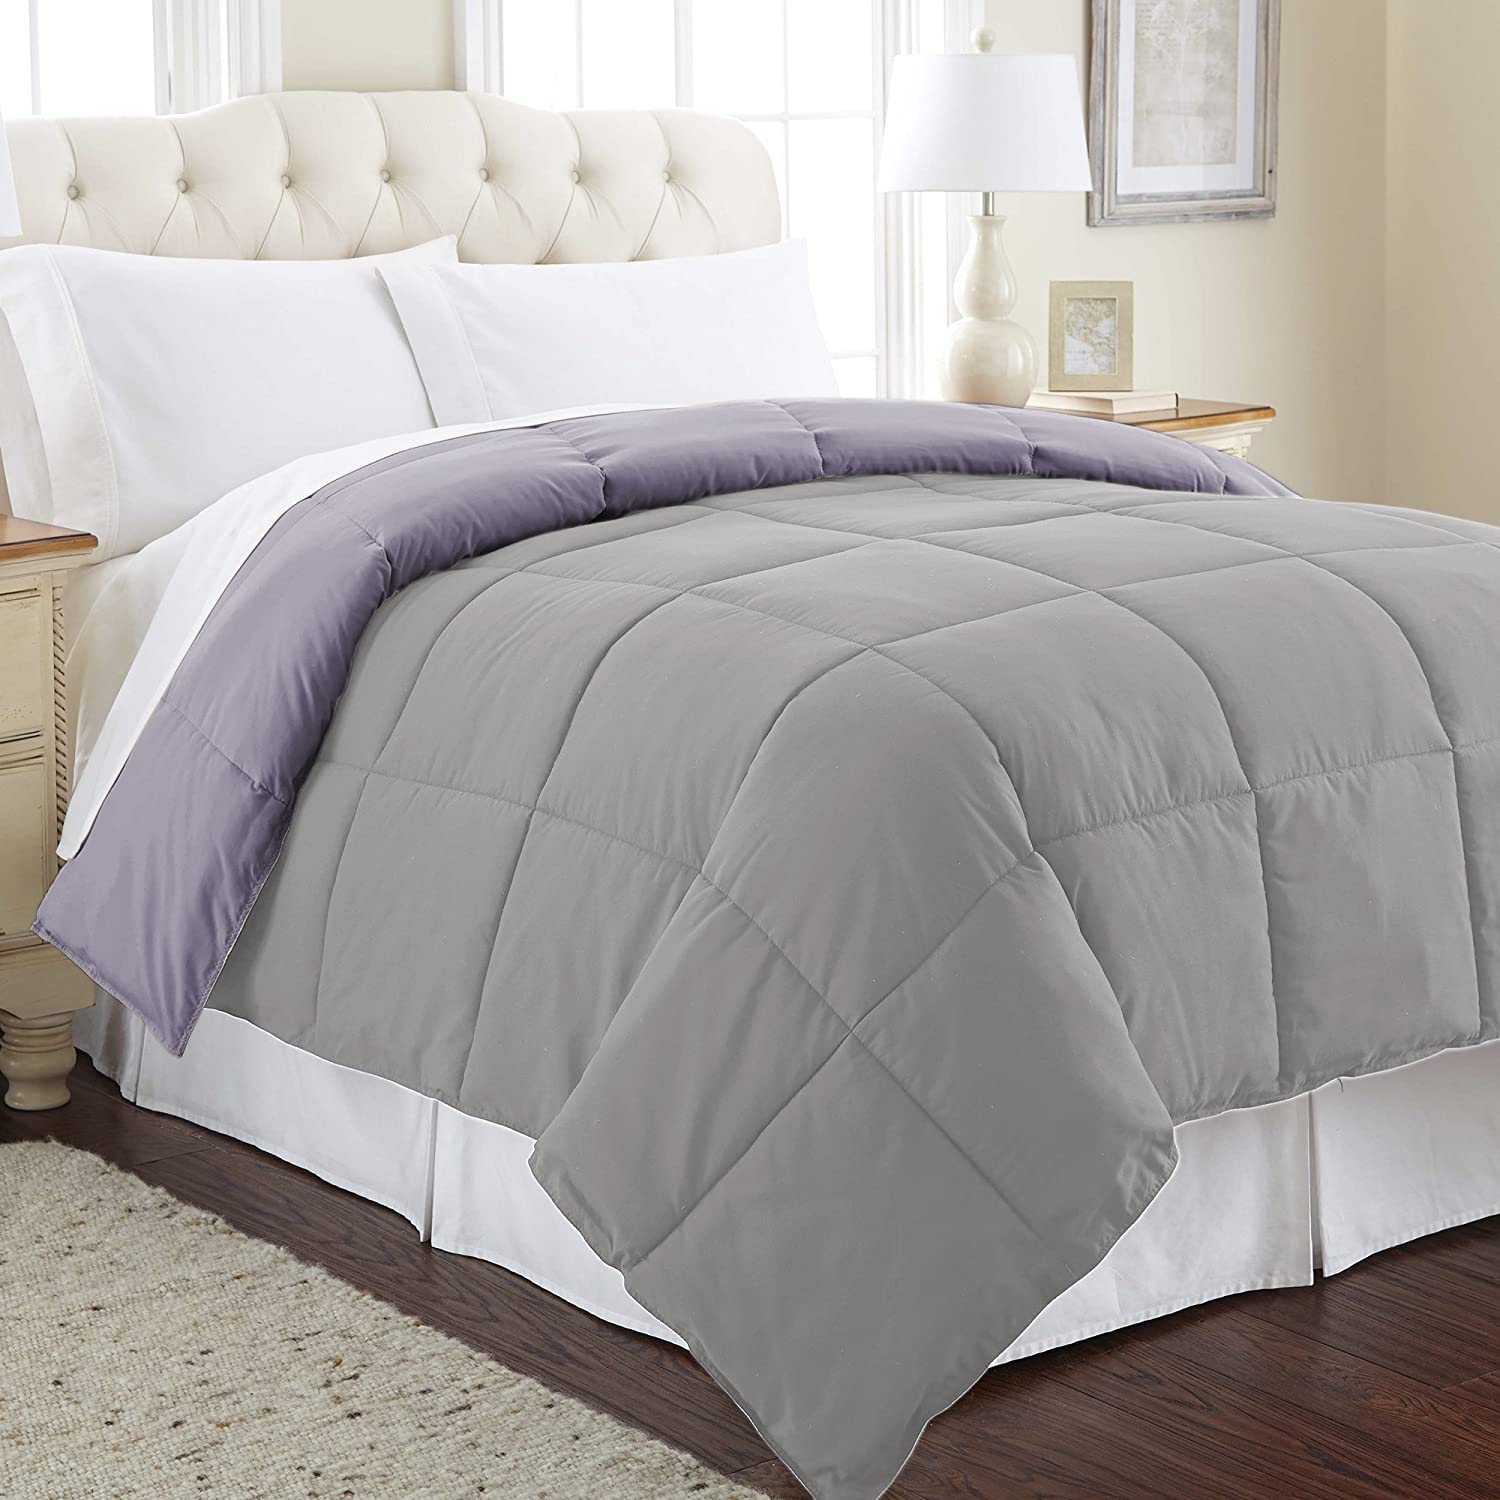 Ultra Soft Hypoallergenic Bedding-Medium Warmth for All Seasons-[Amethyst/Silver King